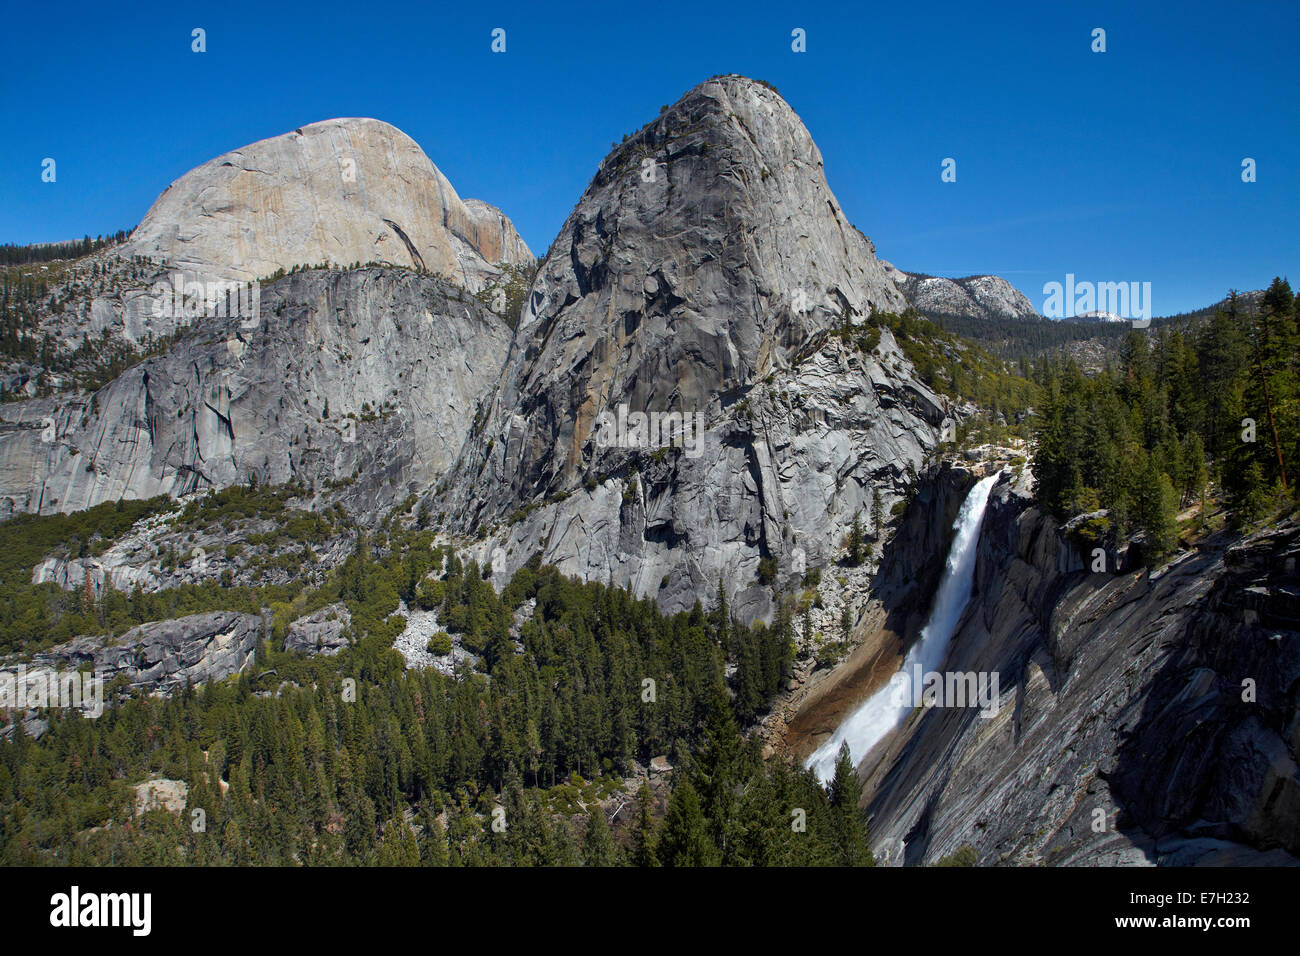 Nevada Fall, and the granite dome of Liberty Cap, on The Mist Trail, Yosemite National Park, California, USA Stock Photo